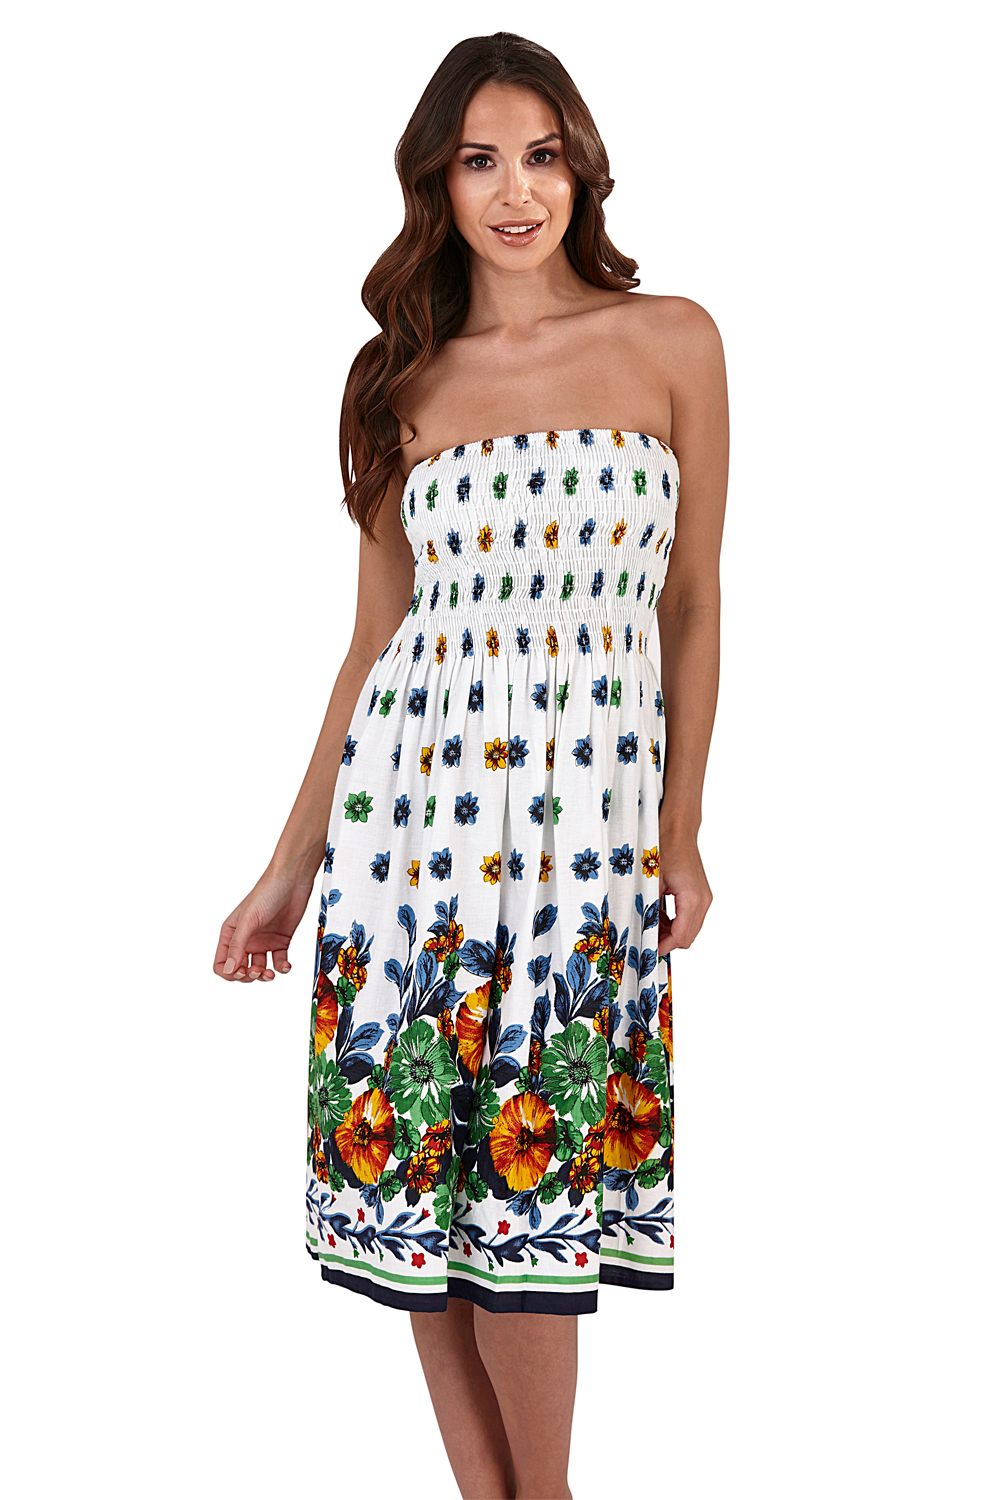 Pistachio-Womens-Patterned-3-In-1-Dresses-Ladies-New-Cotton-Summer-Beach-Skirts thumbnail 10